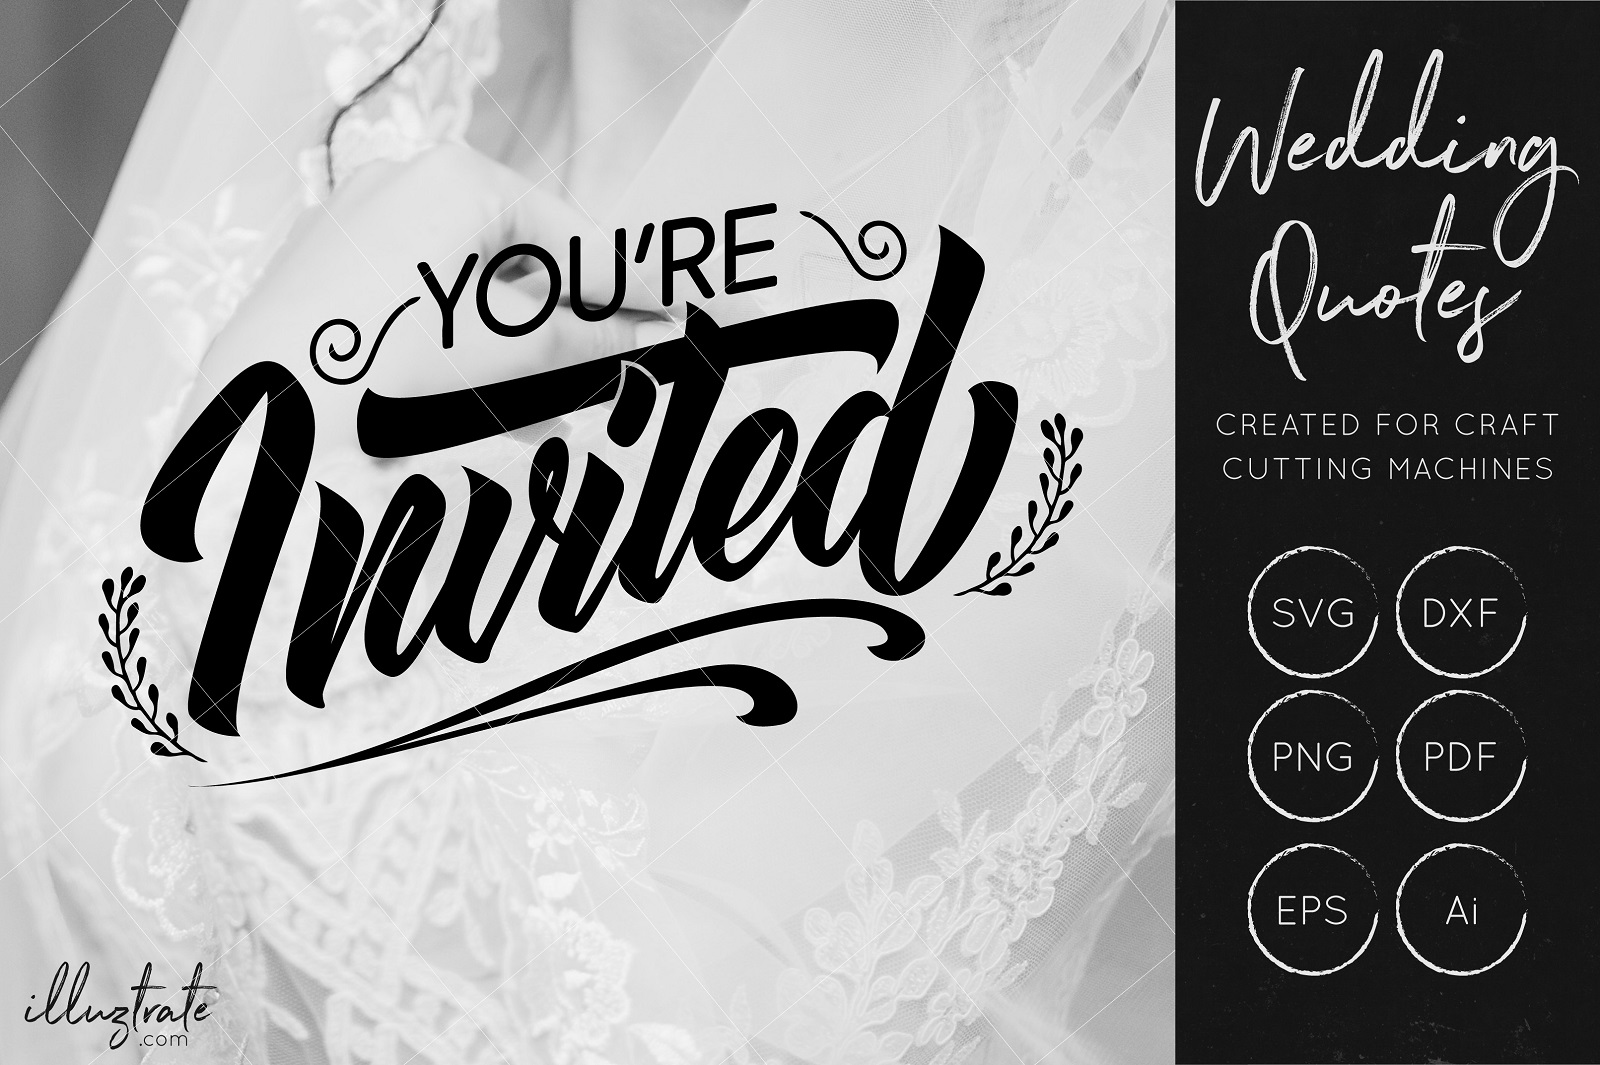 Download Free You Re Invited Cut File For Crafters Wedding Quote Graphic By for Cricut Explore, Silhouette and other cutting machines.